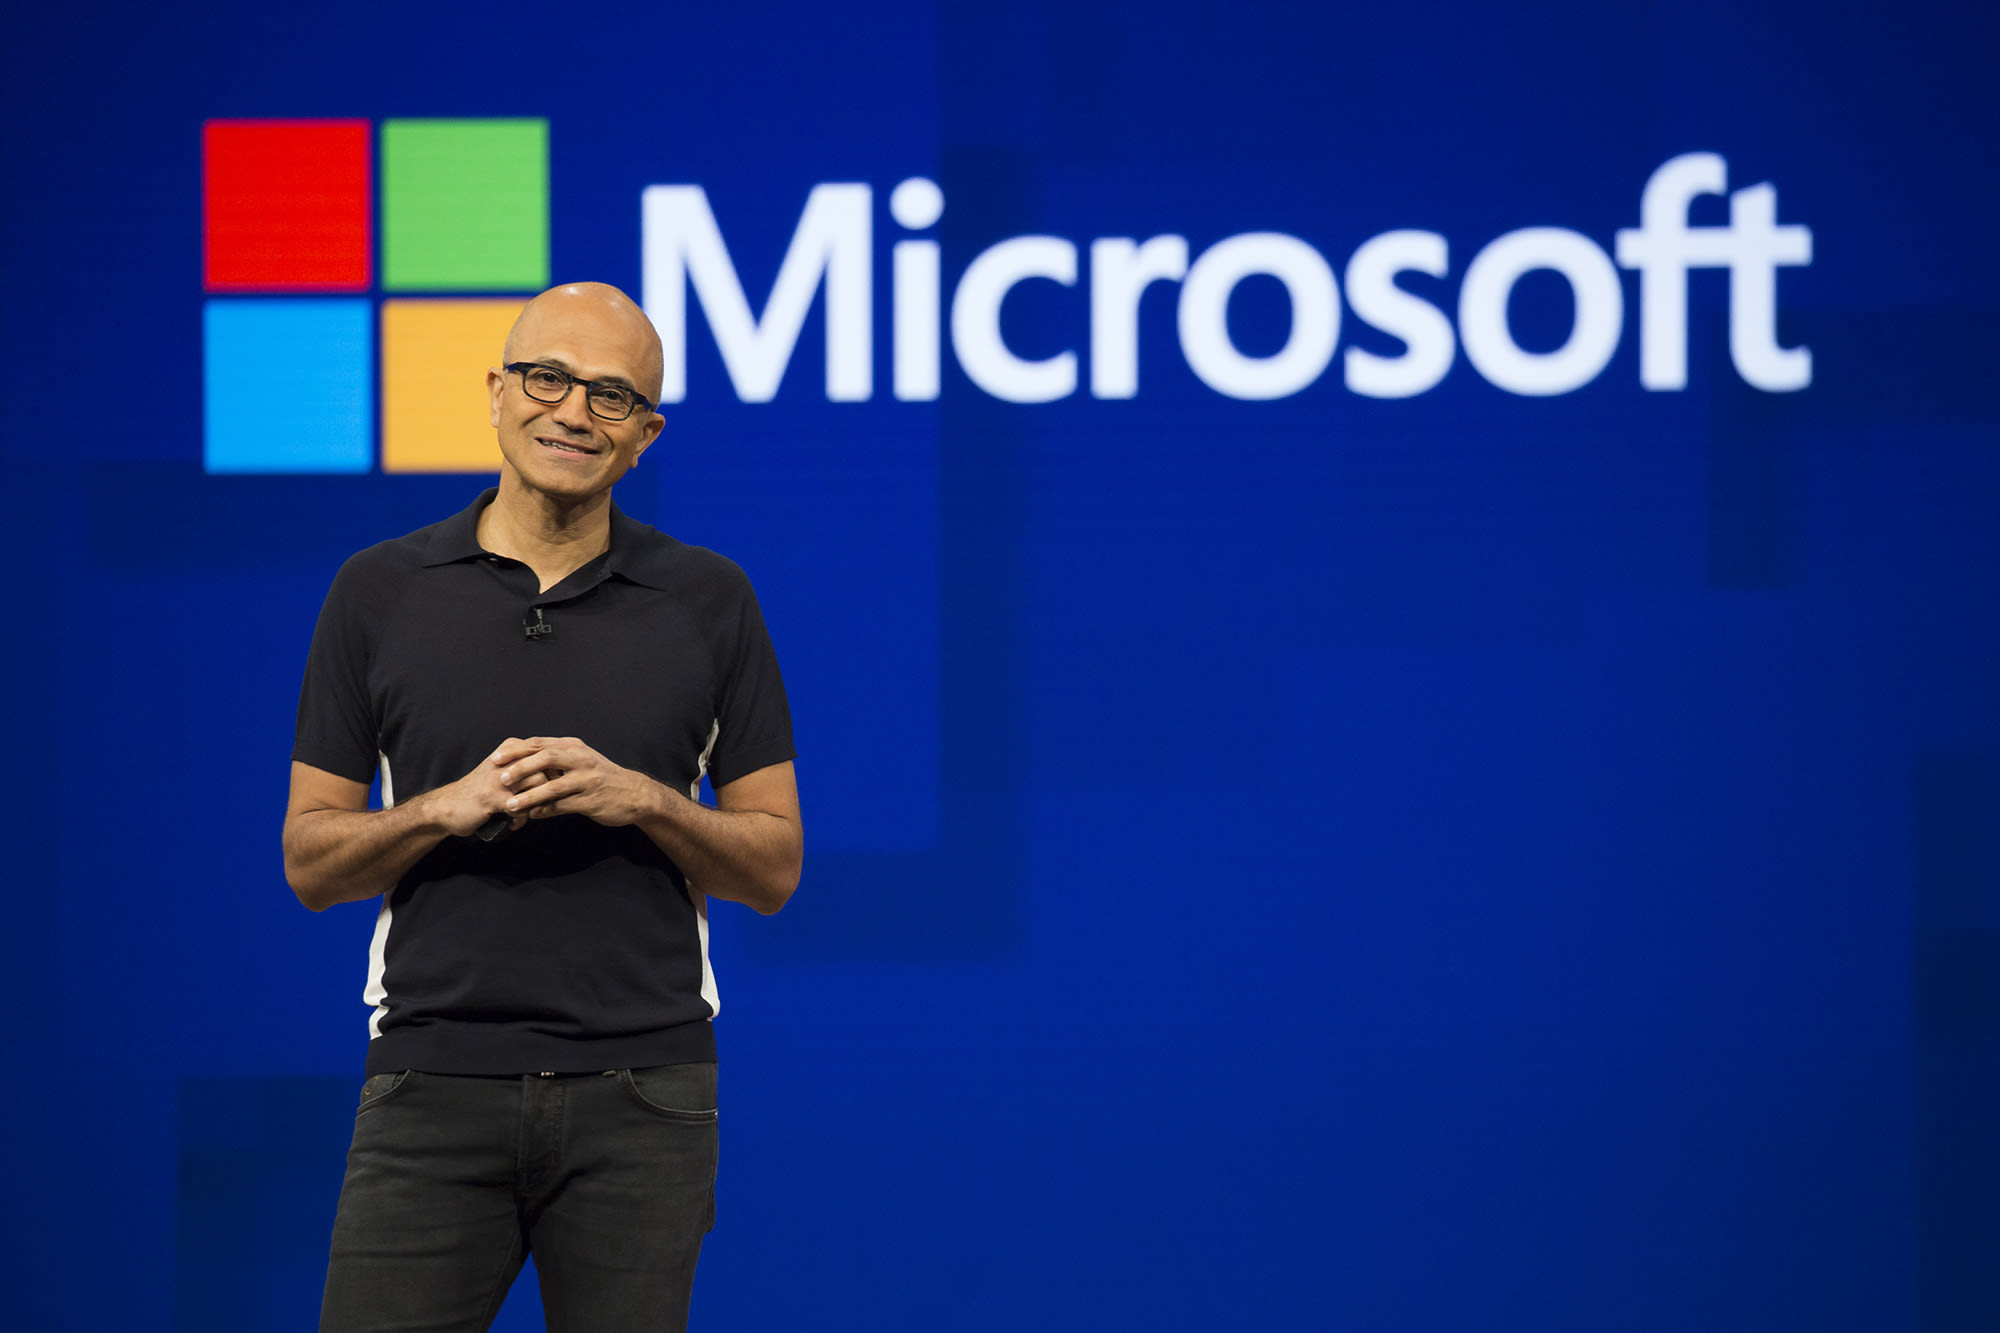 Microsoft CEO Satya Nadella says this piece of advice impacted him profoundly